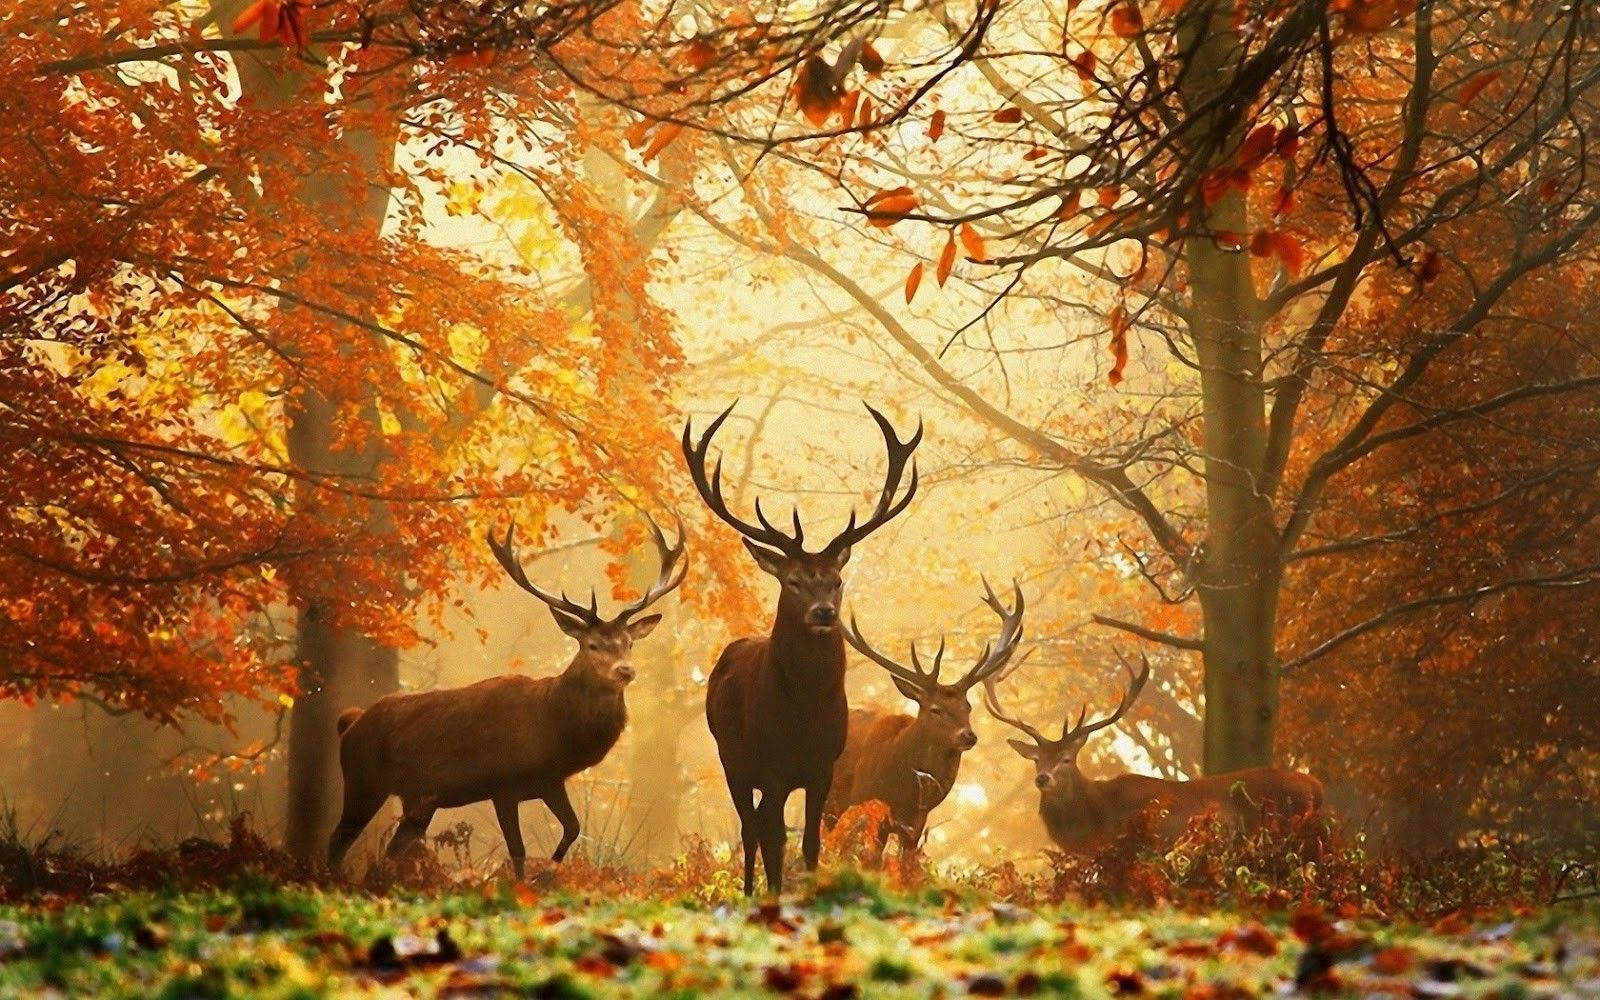 beautiful nature photos with animals | Free HD Wallpapers ...